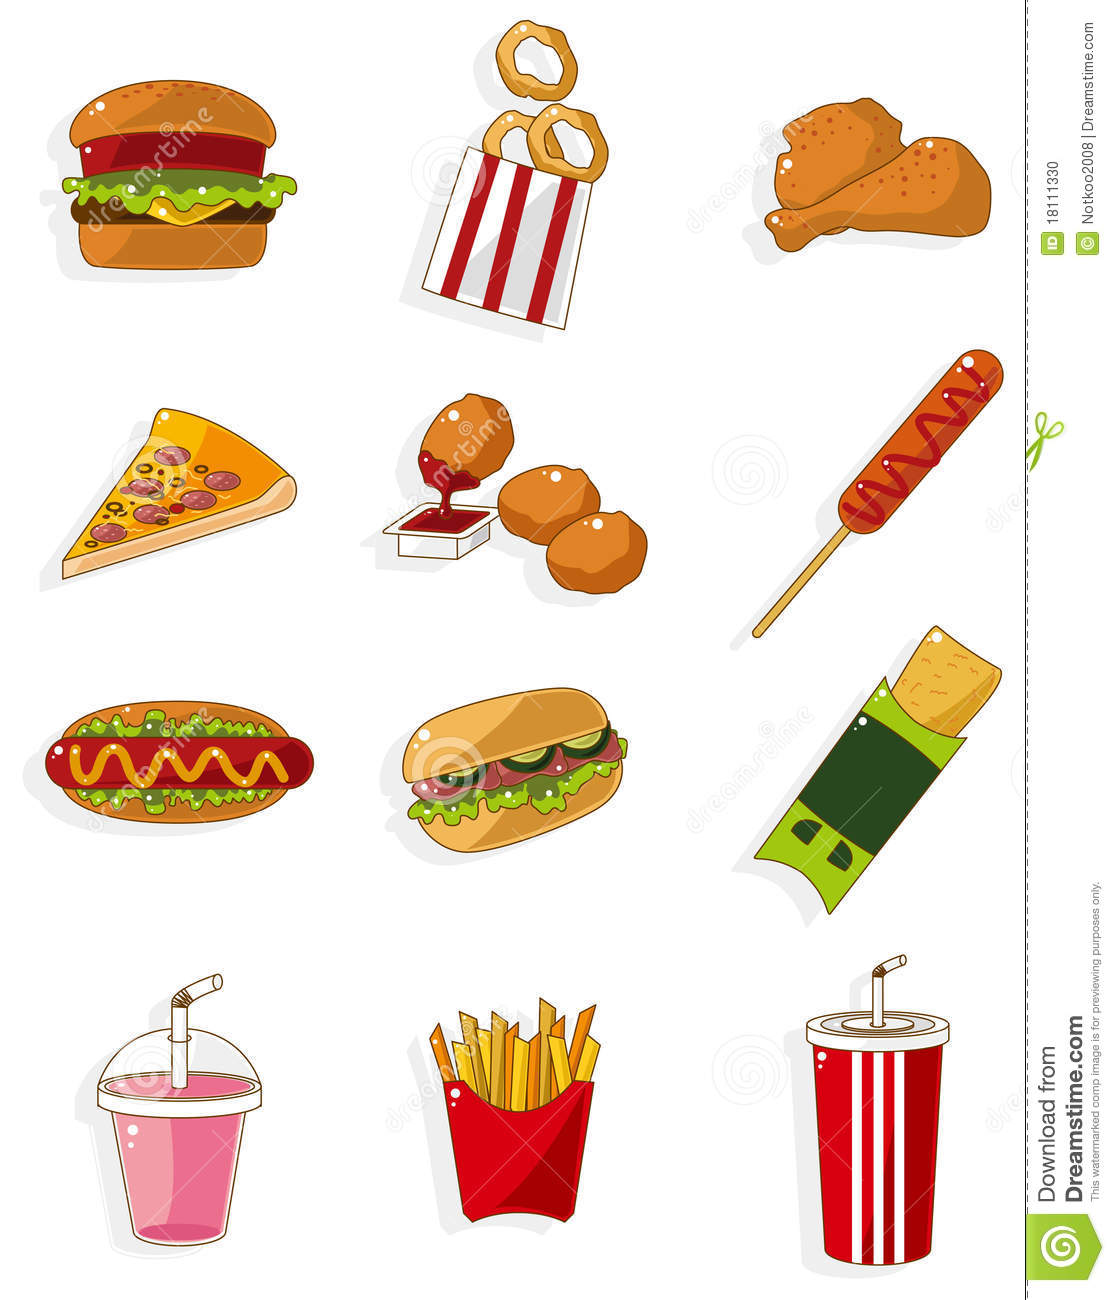 Cartoon hamburger fast food cartoon fast food cartoon cartoon pictures - Cartoon Fast Food Icon Stock Vector Image Of Dessert